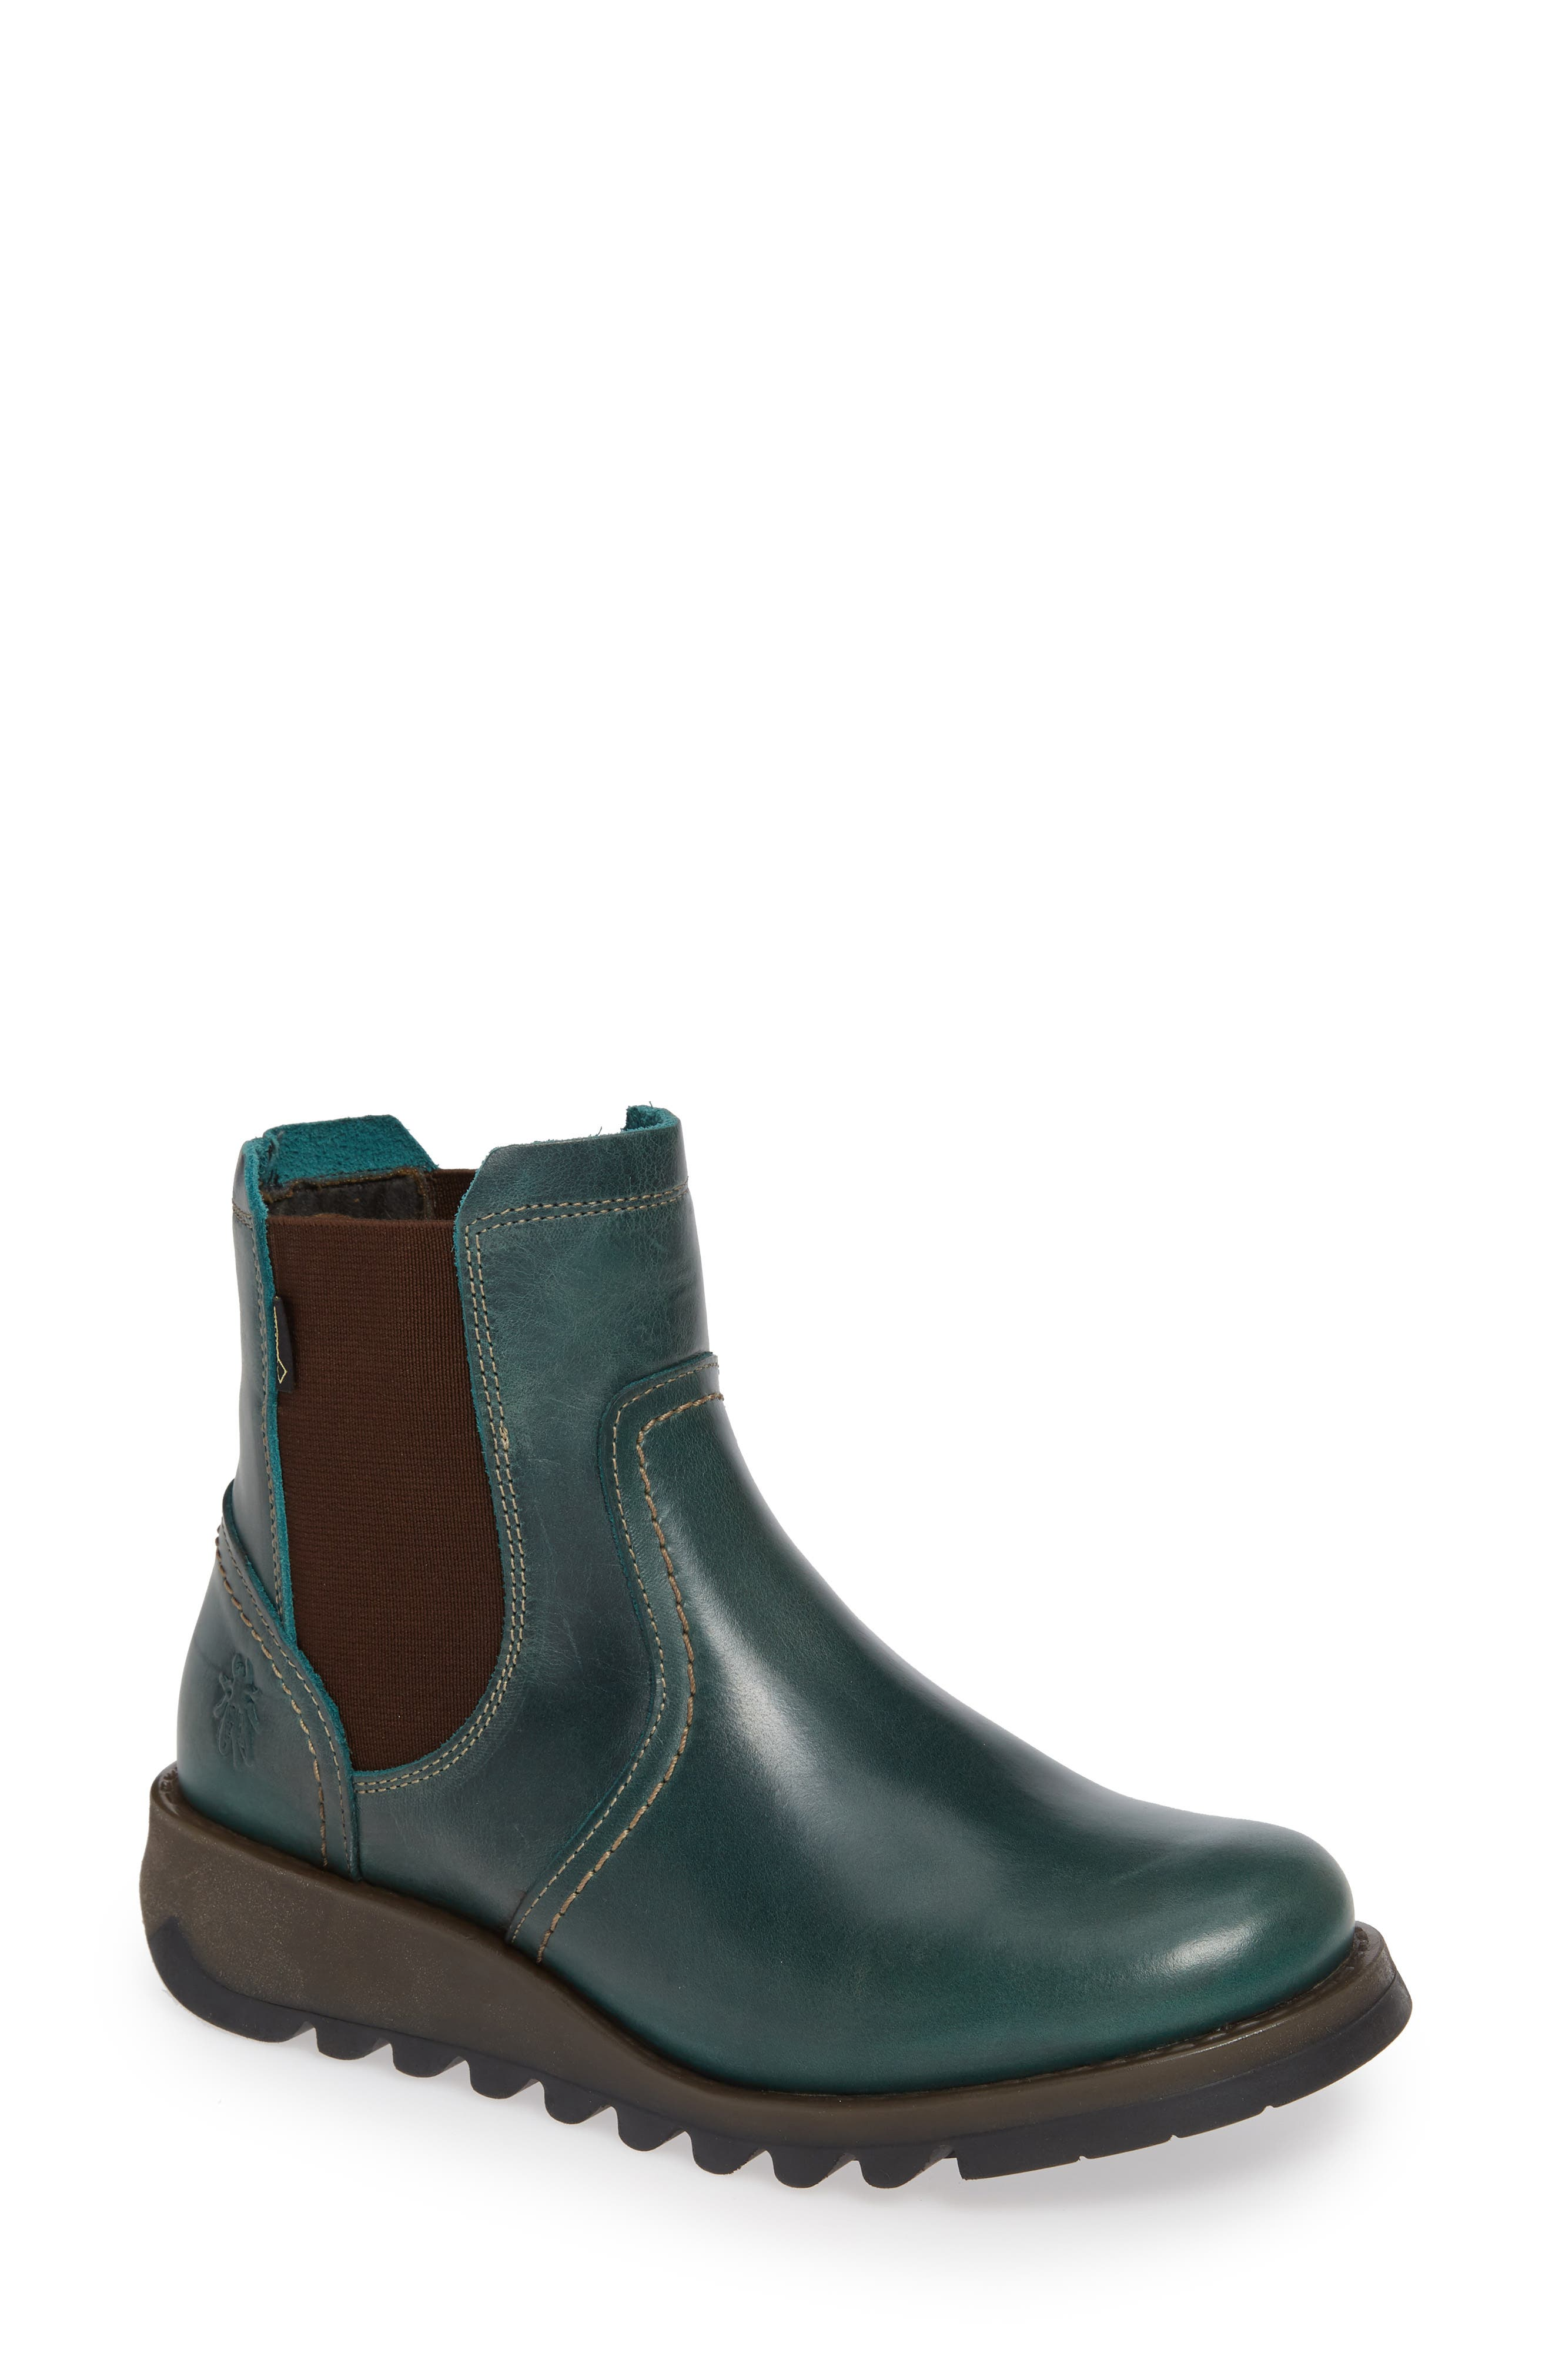 Scon Waterproof Gore-Tex<sup>®</sup> Chelsea Boot,                             Main thumbnail 1, color,                             Petrol